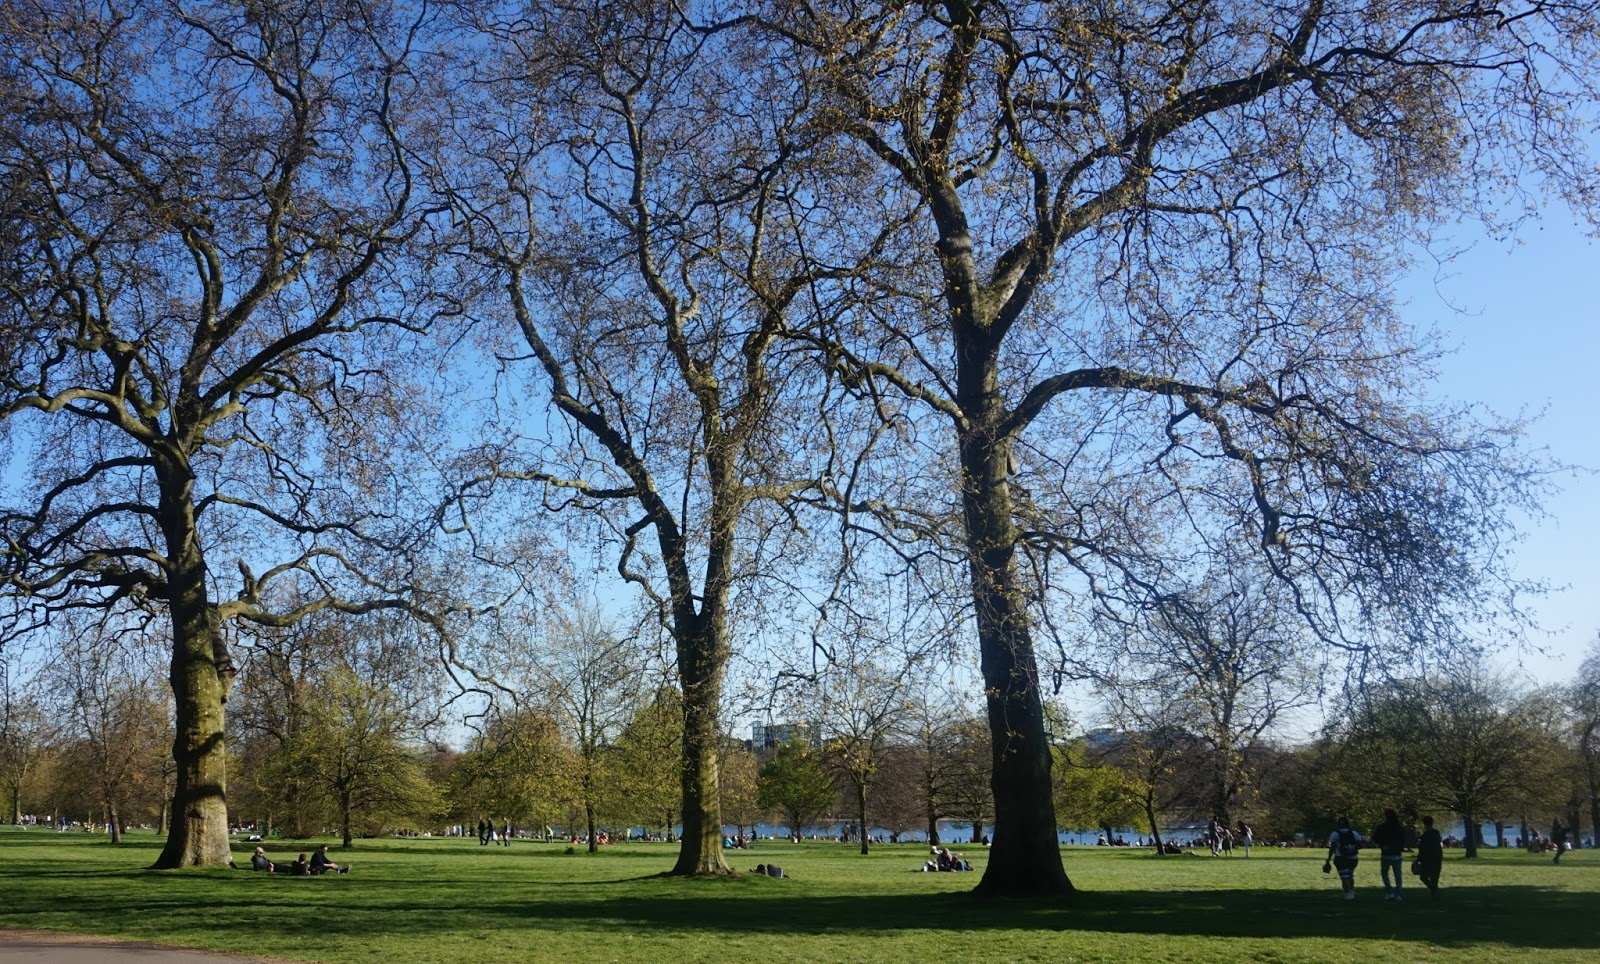 A Glorious Spring Day in London #2